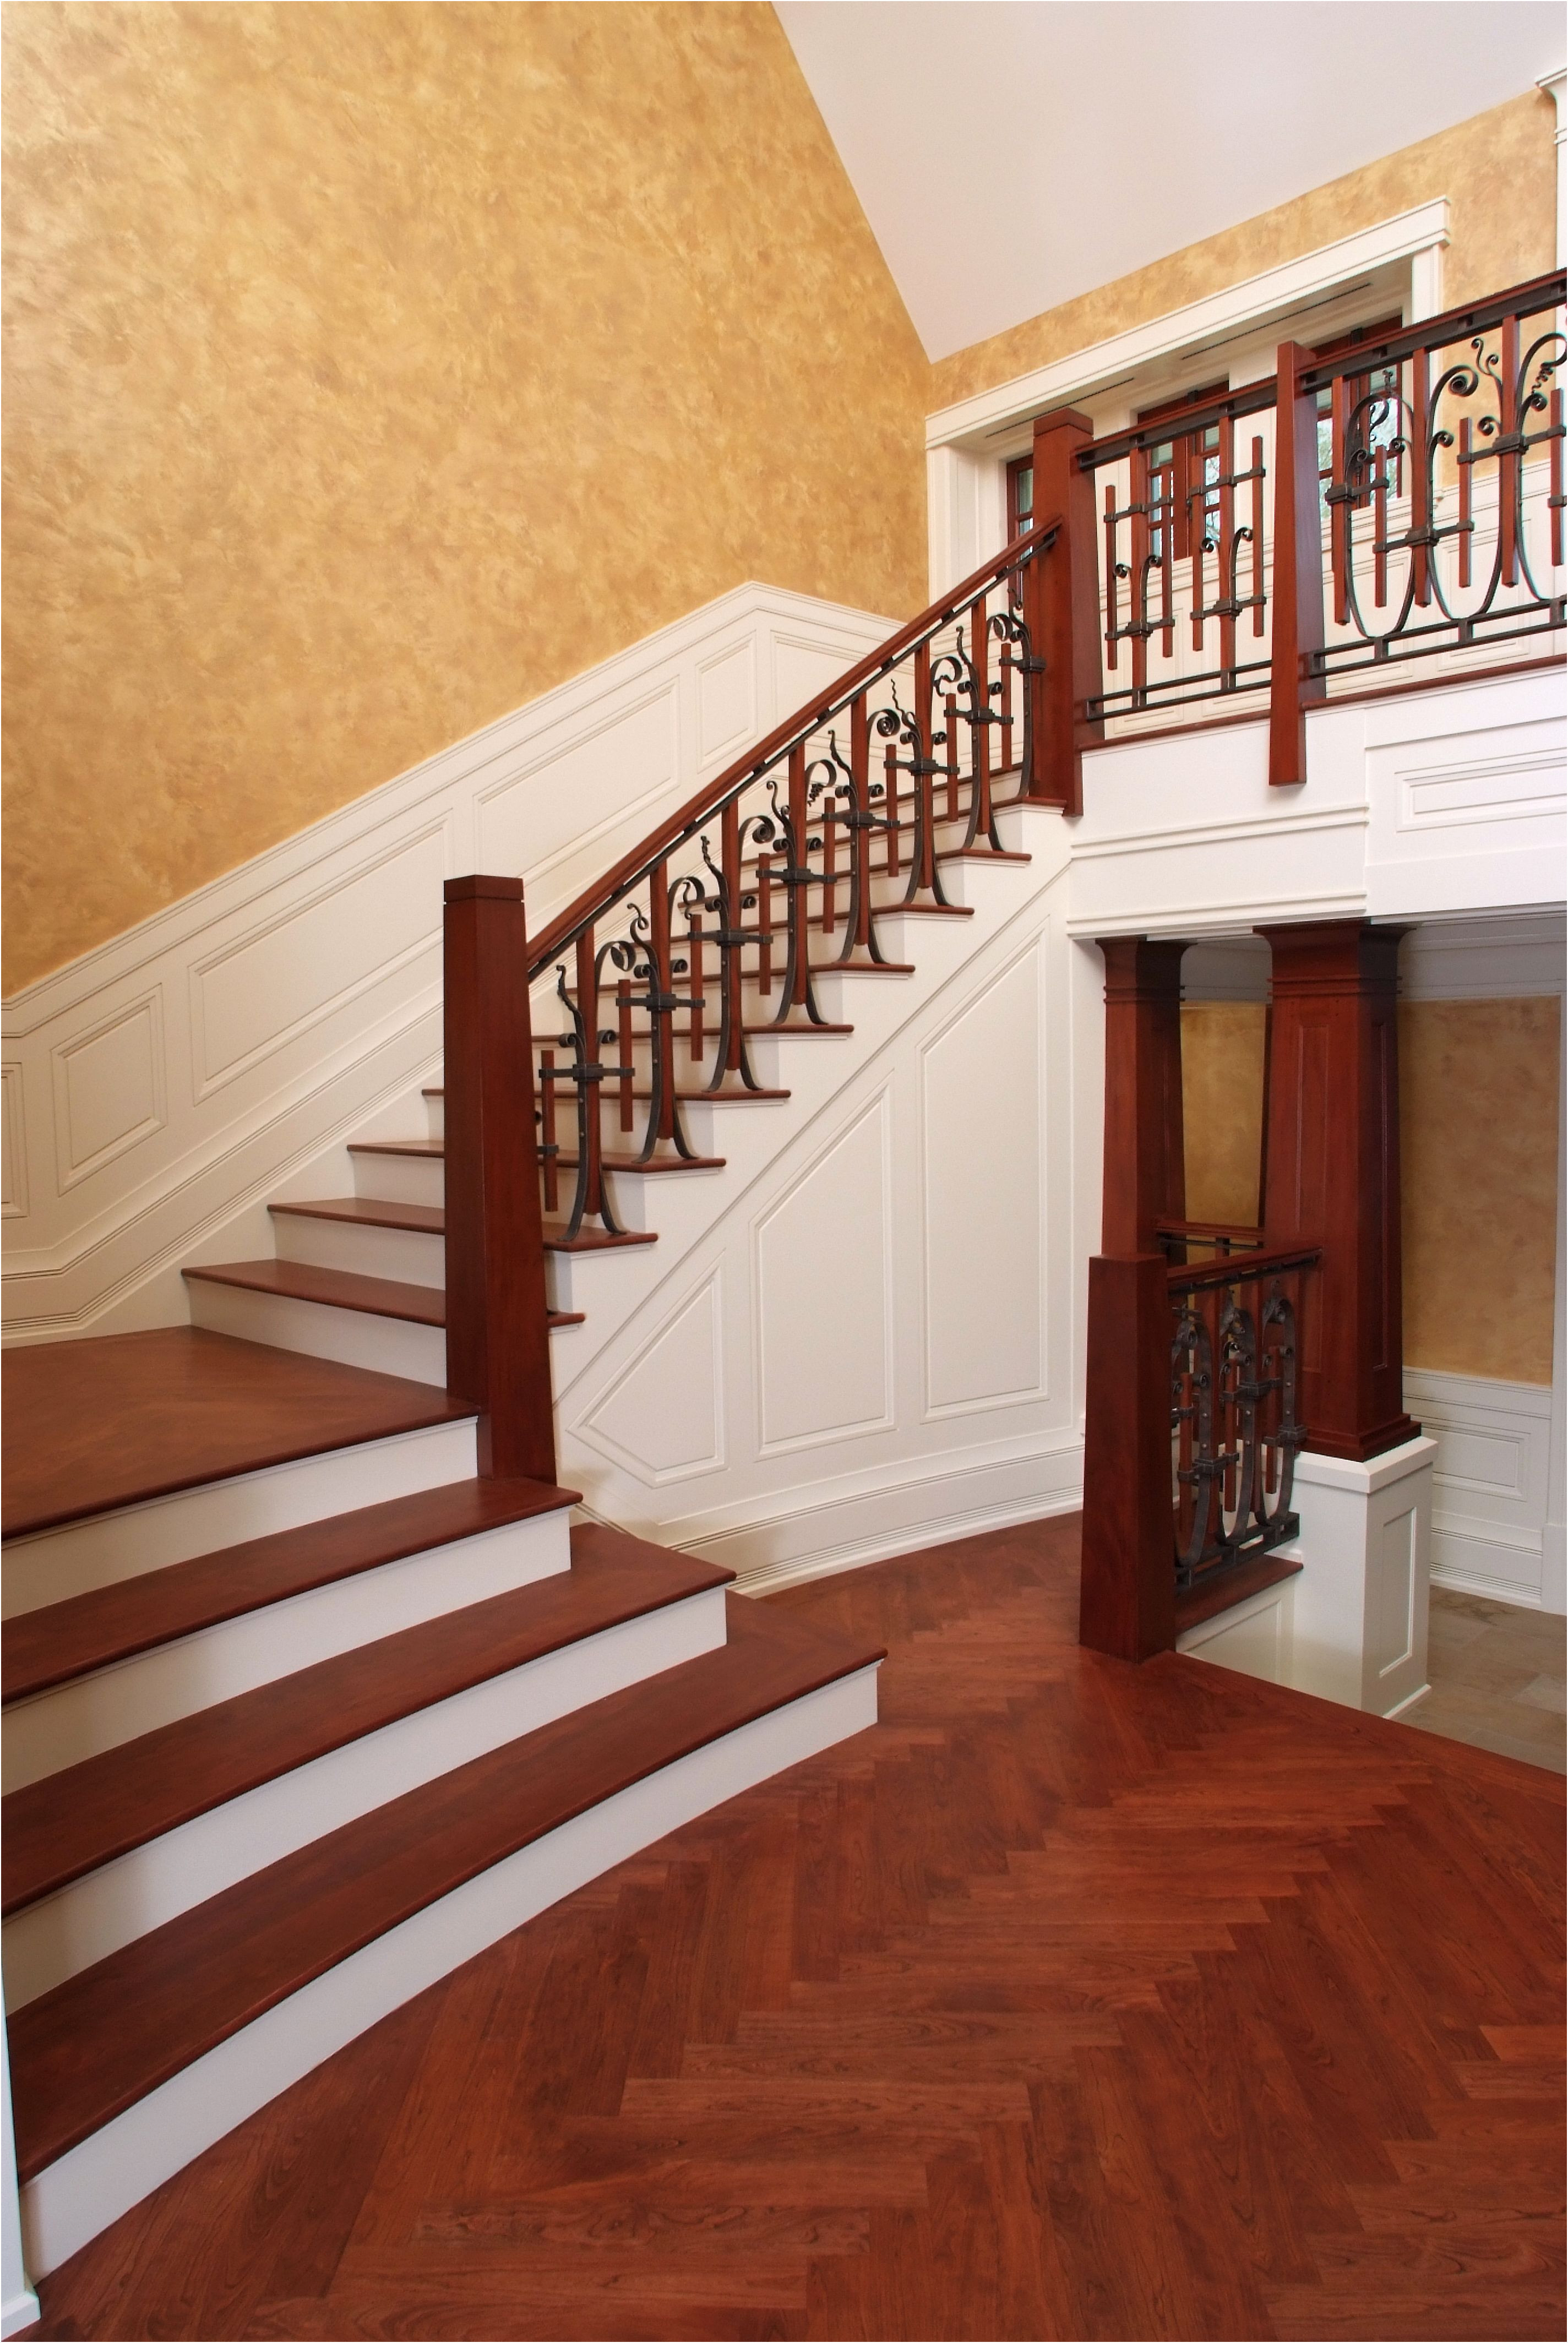 Hardwood Floor Refinishing fort Wayne Of 11 New Refinishing Hardwood Stairs Interior Stairs with Regard to Refinishing Hardwood Stairs Fresh Custom Mahogany Staircase with Cherry Stair Treads and solid Cherry